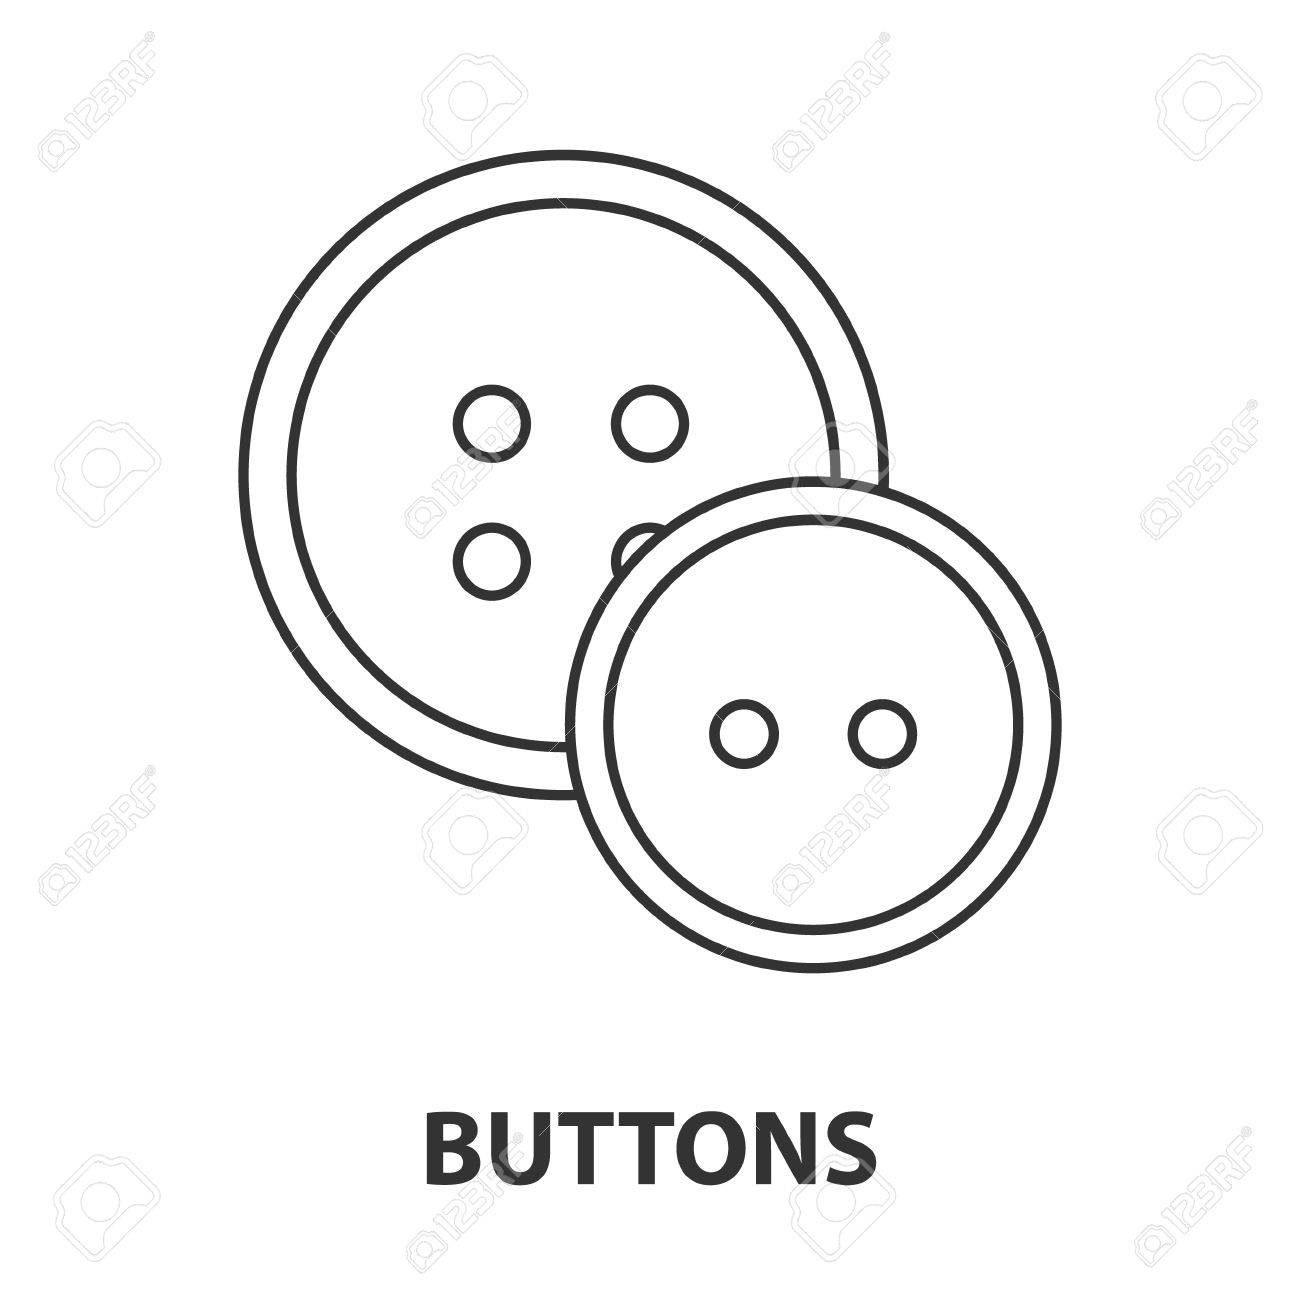 1300x1300 Buttons Icon Or Logo Line Art Style. Vector Illustration. Royalty